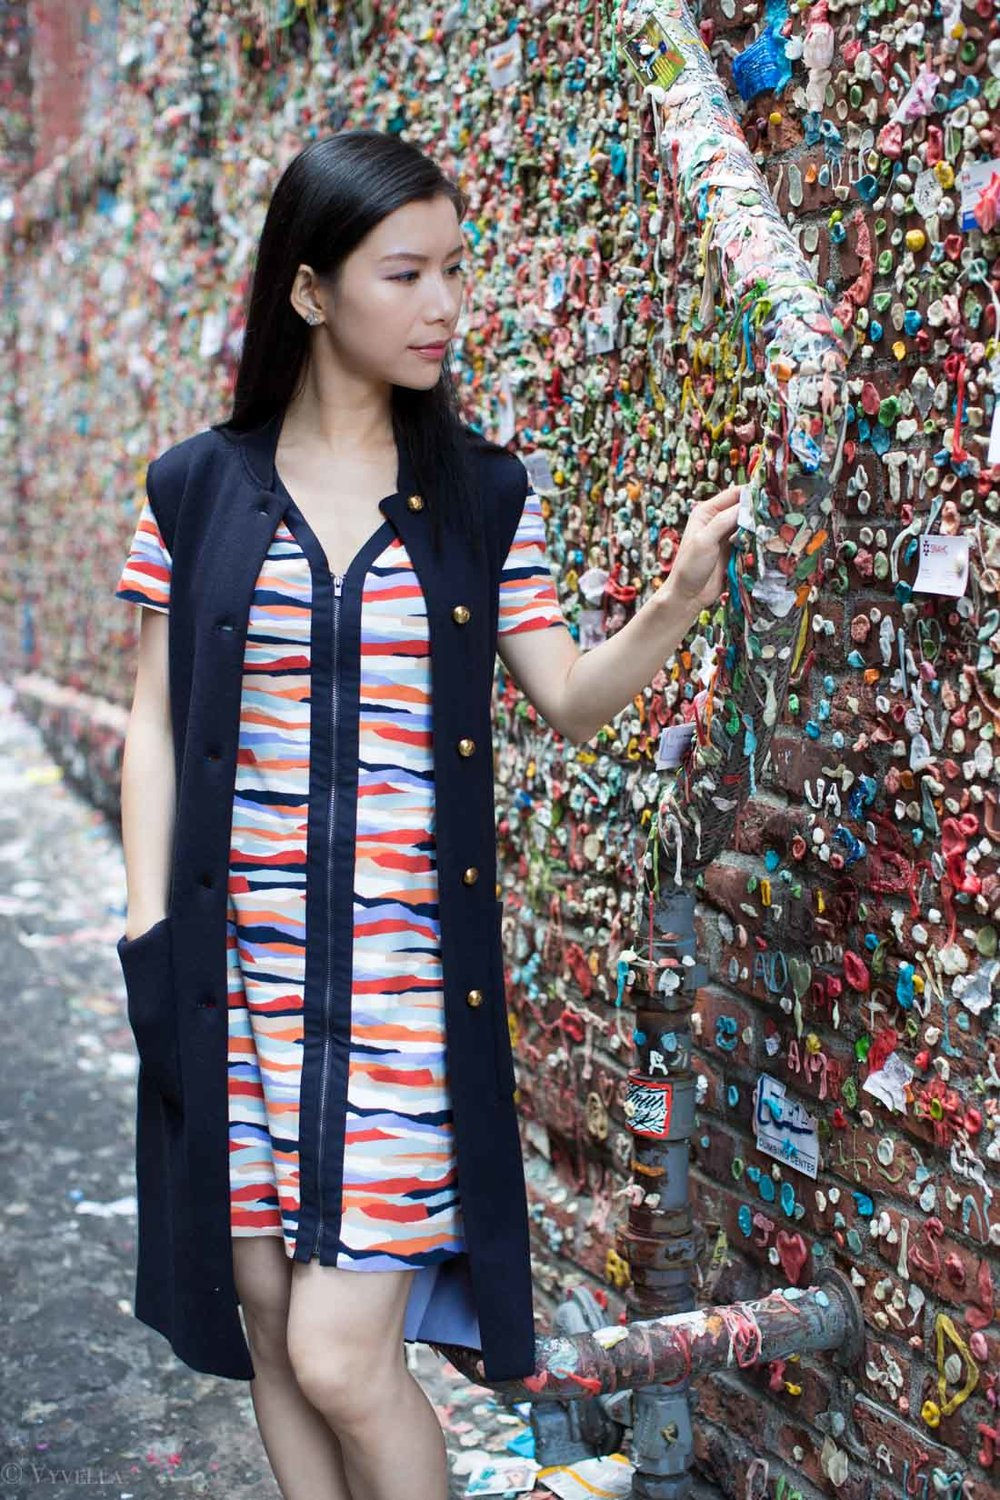 travel_seattle-gum-wall_07.jpg